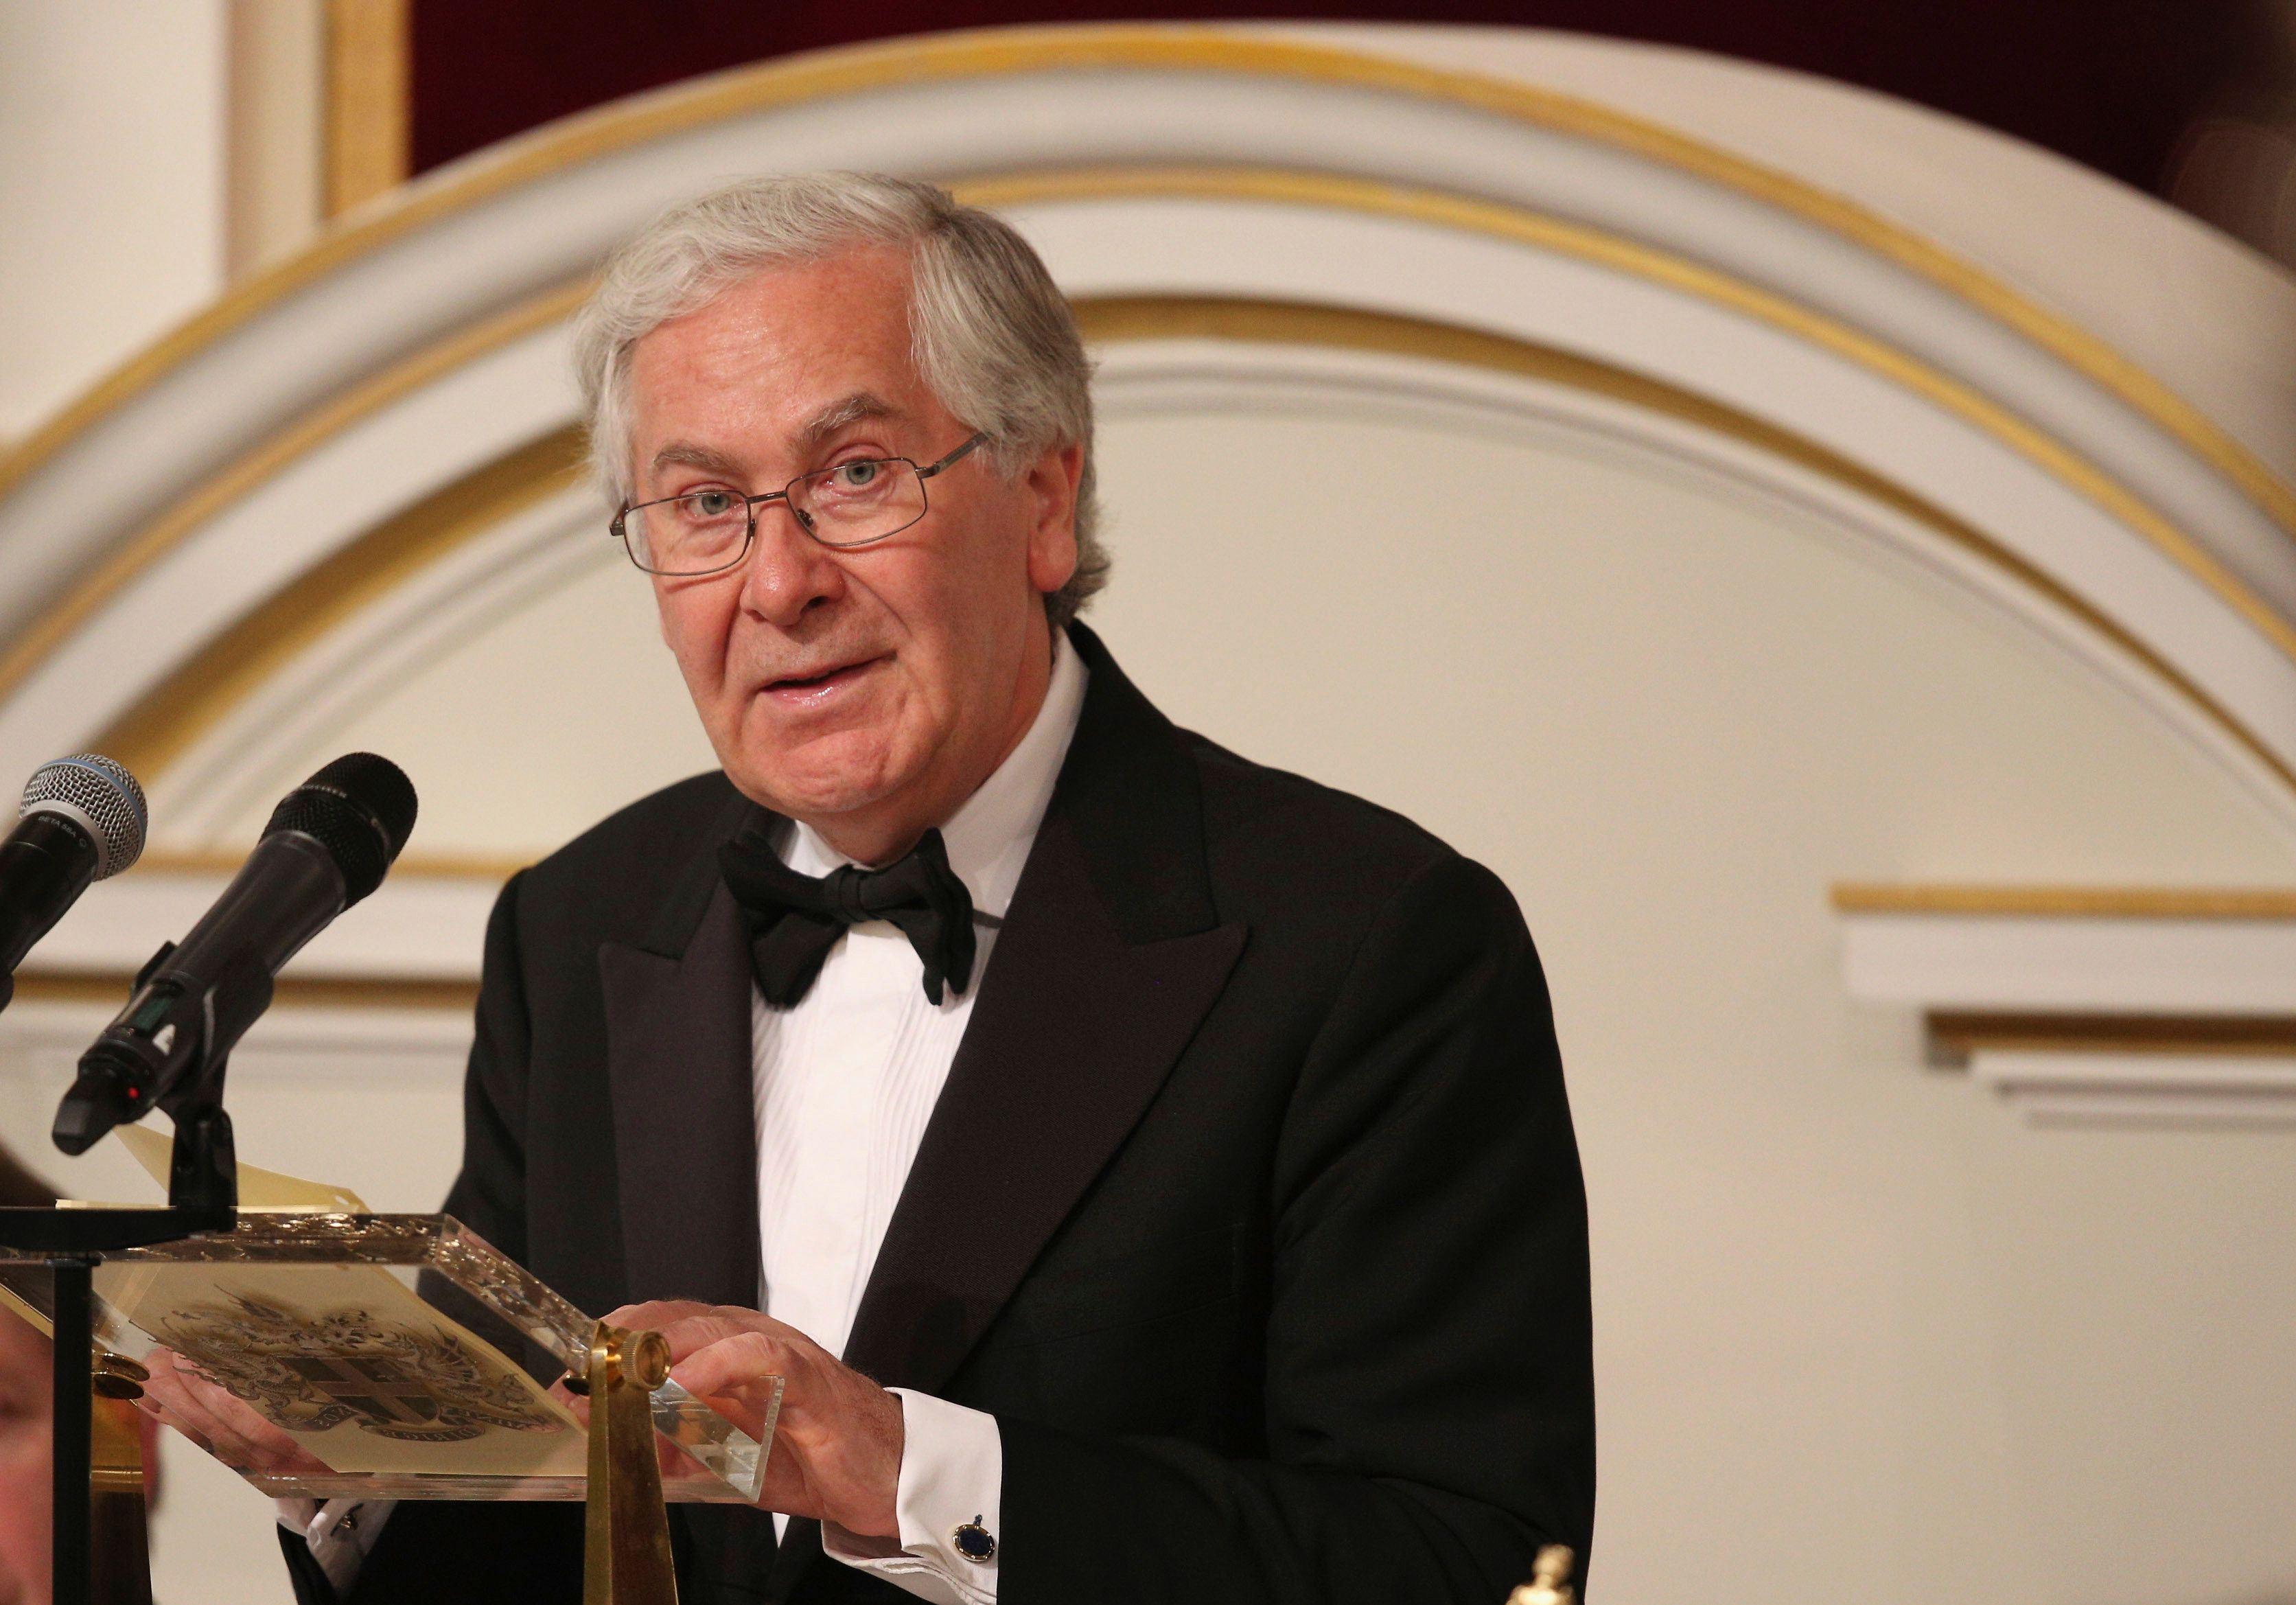 Former Bank of England governor Lord Mervyn King has attacked the government over its Brexit negotiations